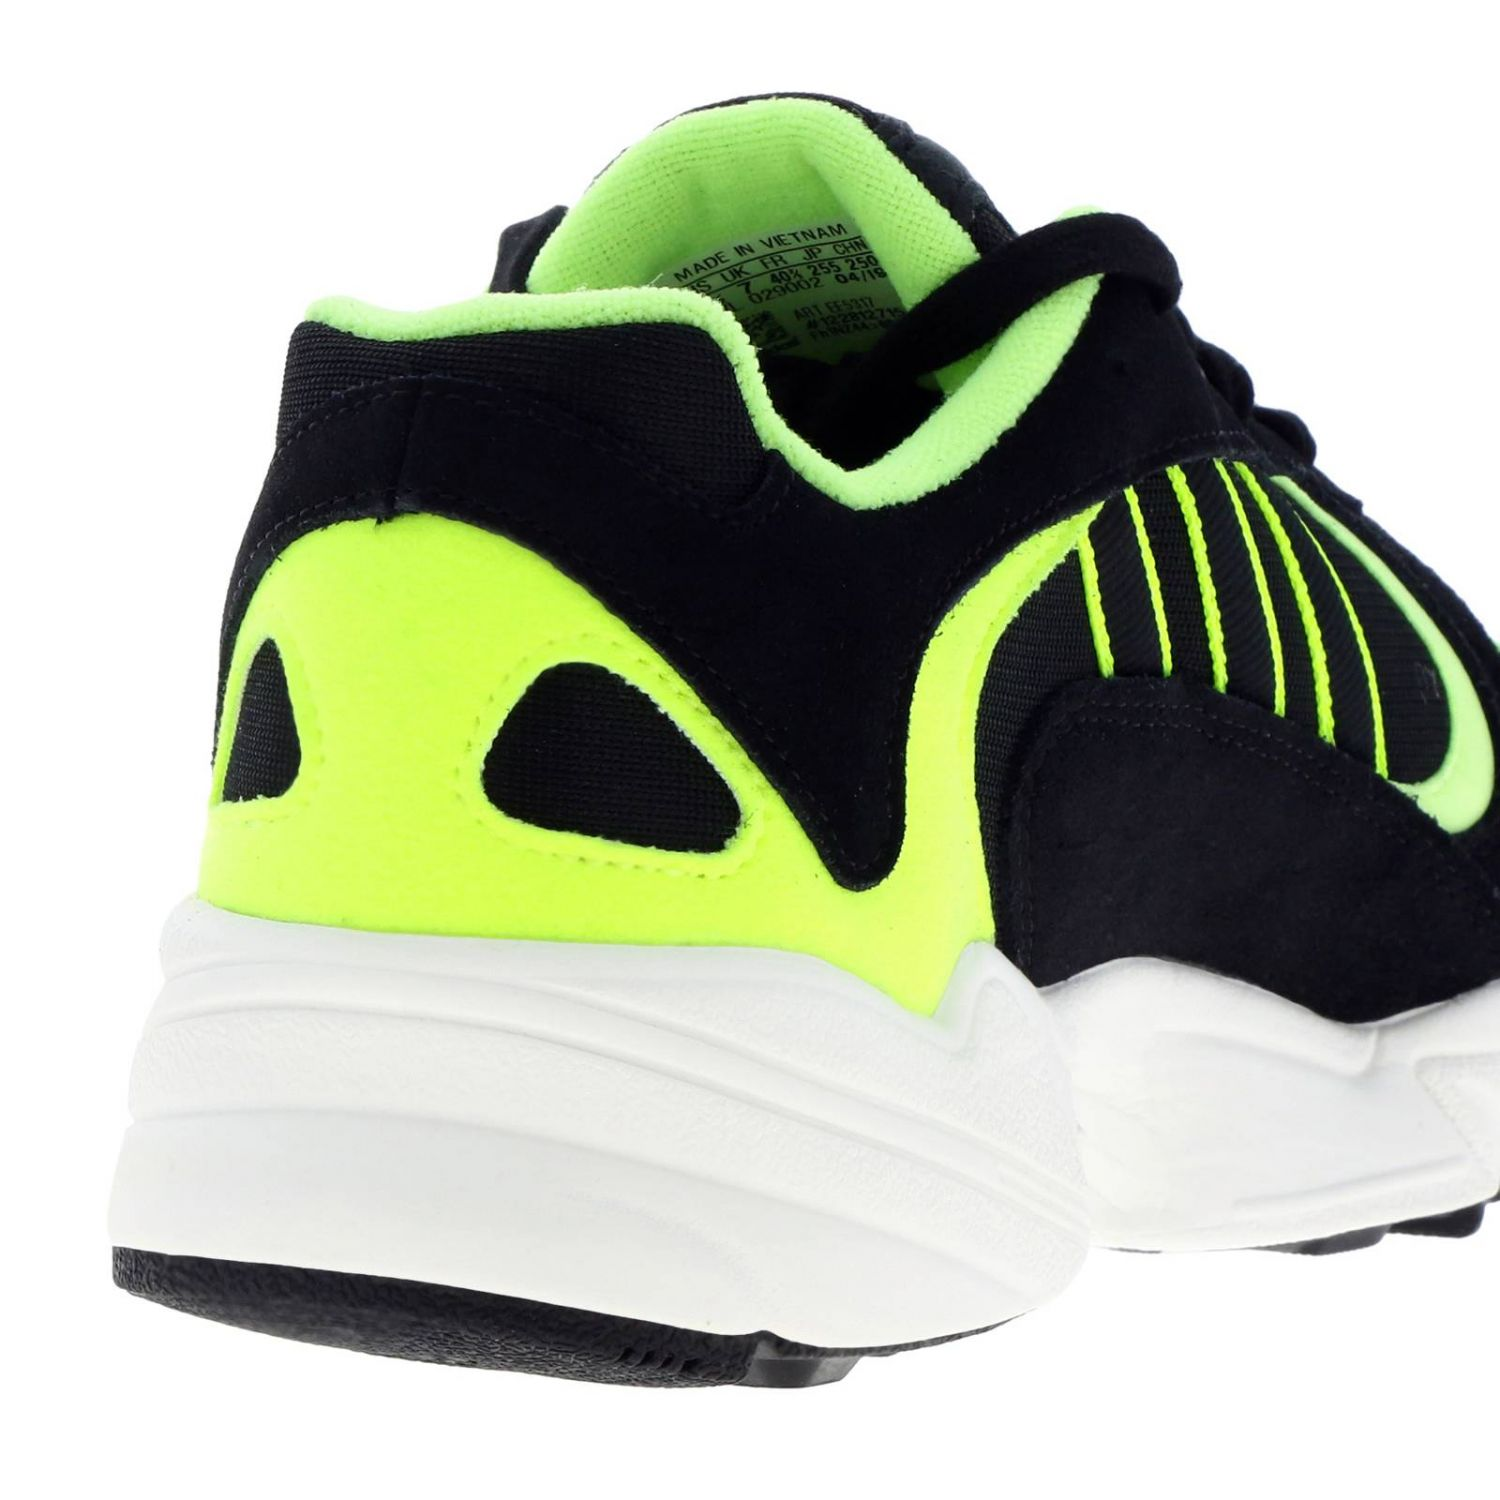 Sneakers Adidas Originals: Sneakers Yung-1 Adidas Originals in mesh fluo camoscio e rete con suola in gomma nero 4